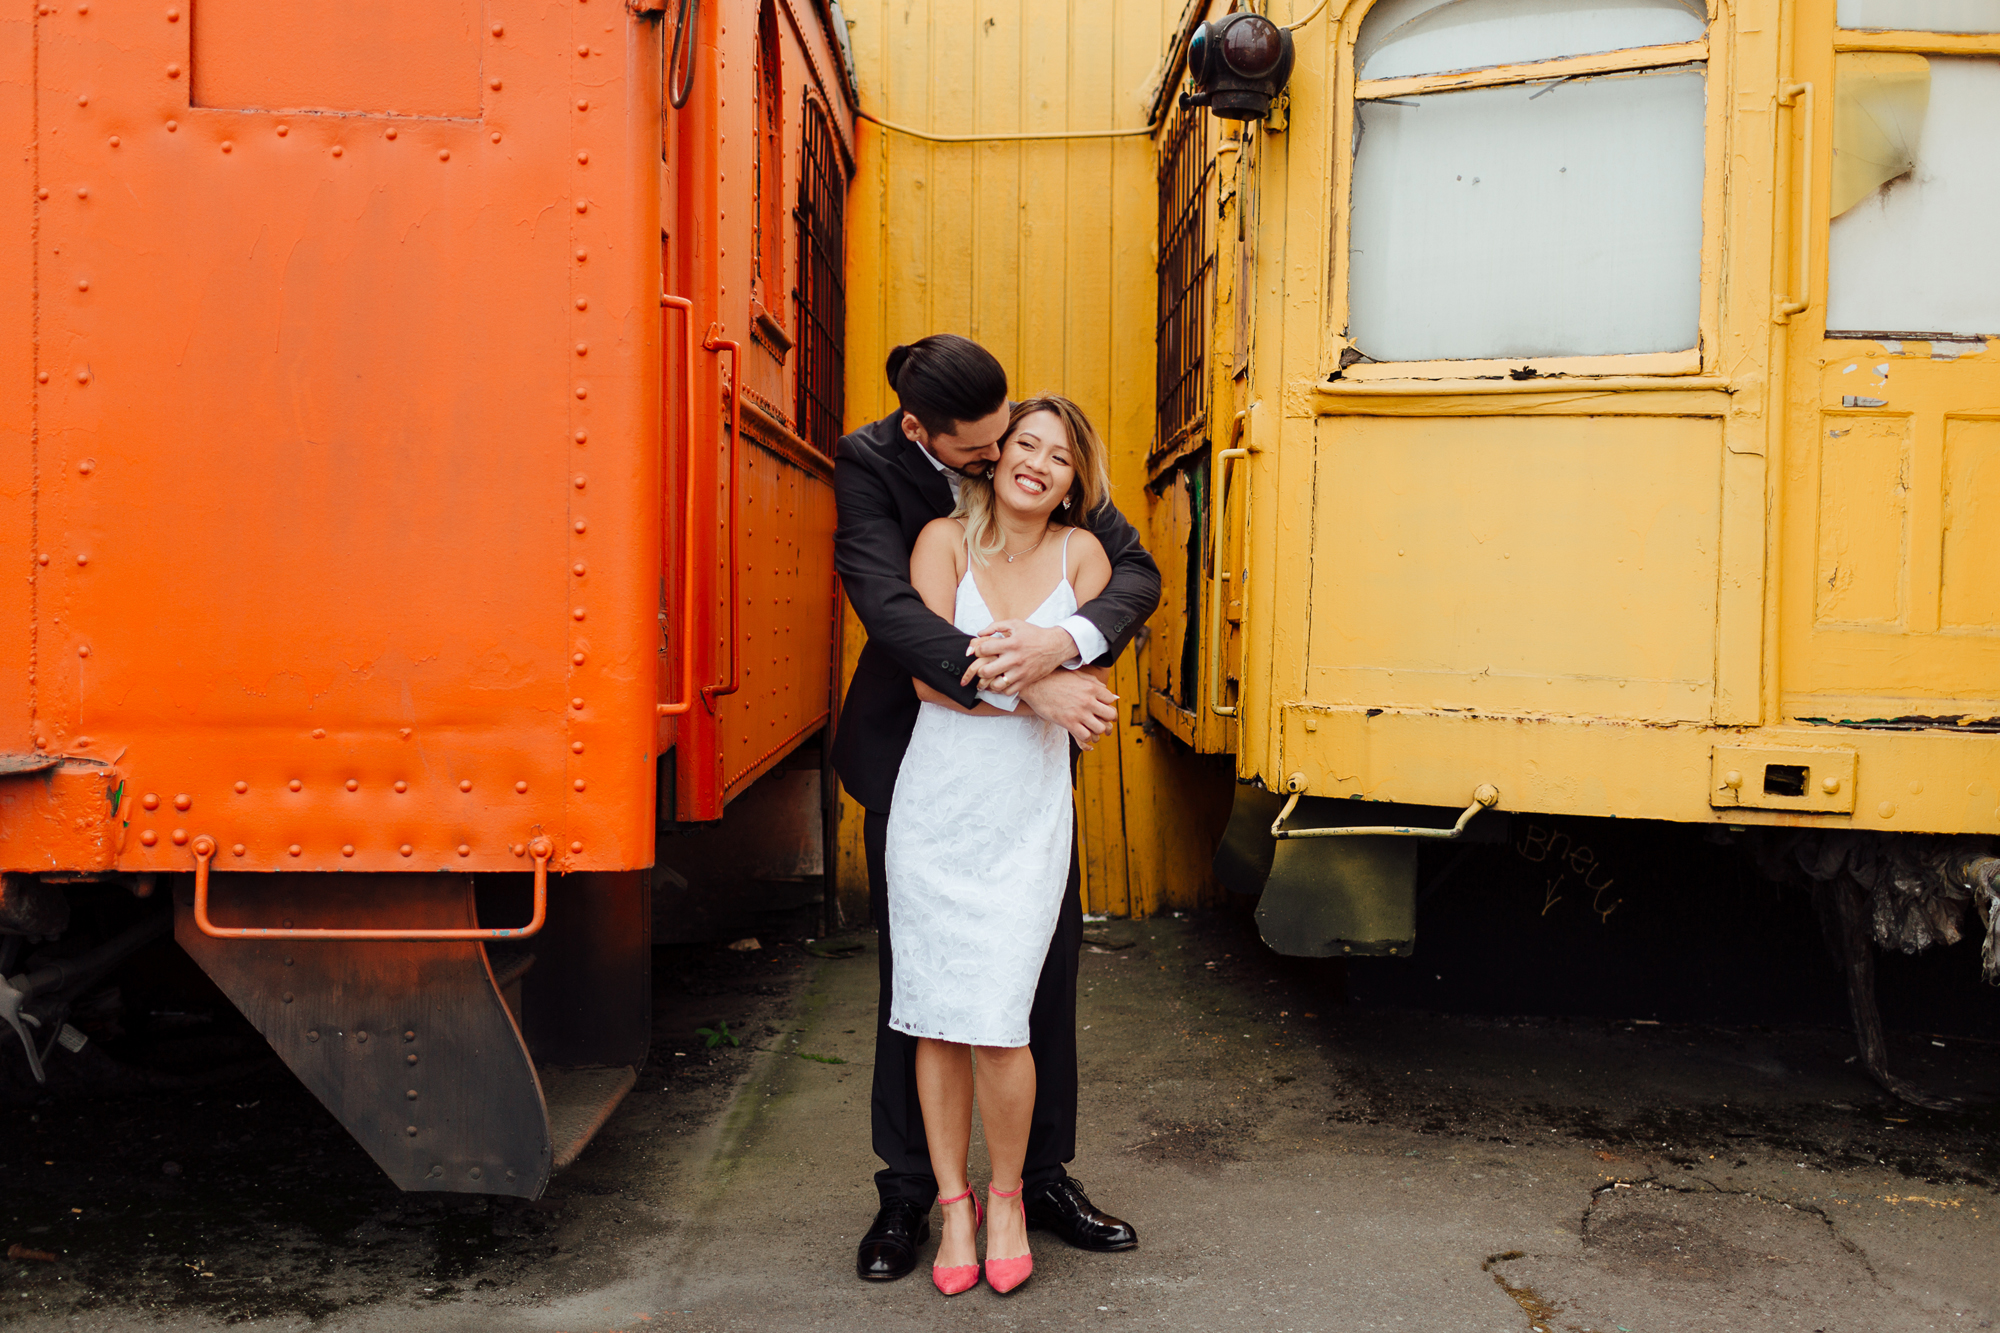 Seattle Rooftop Courthouse Wedding Photos by Krista Welch00028.jpg